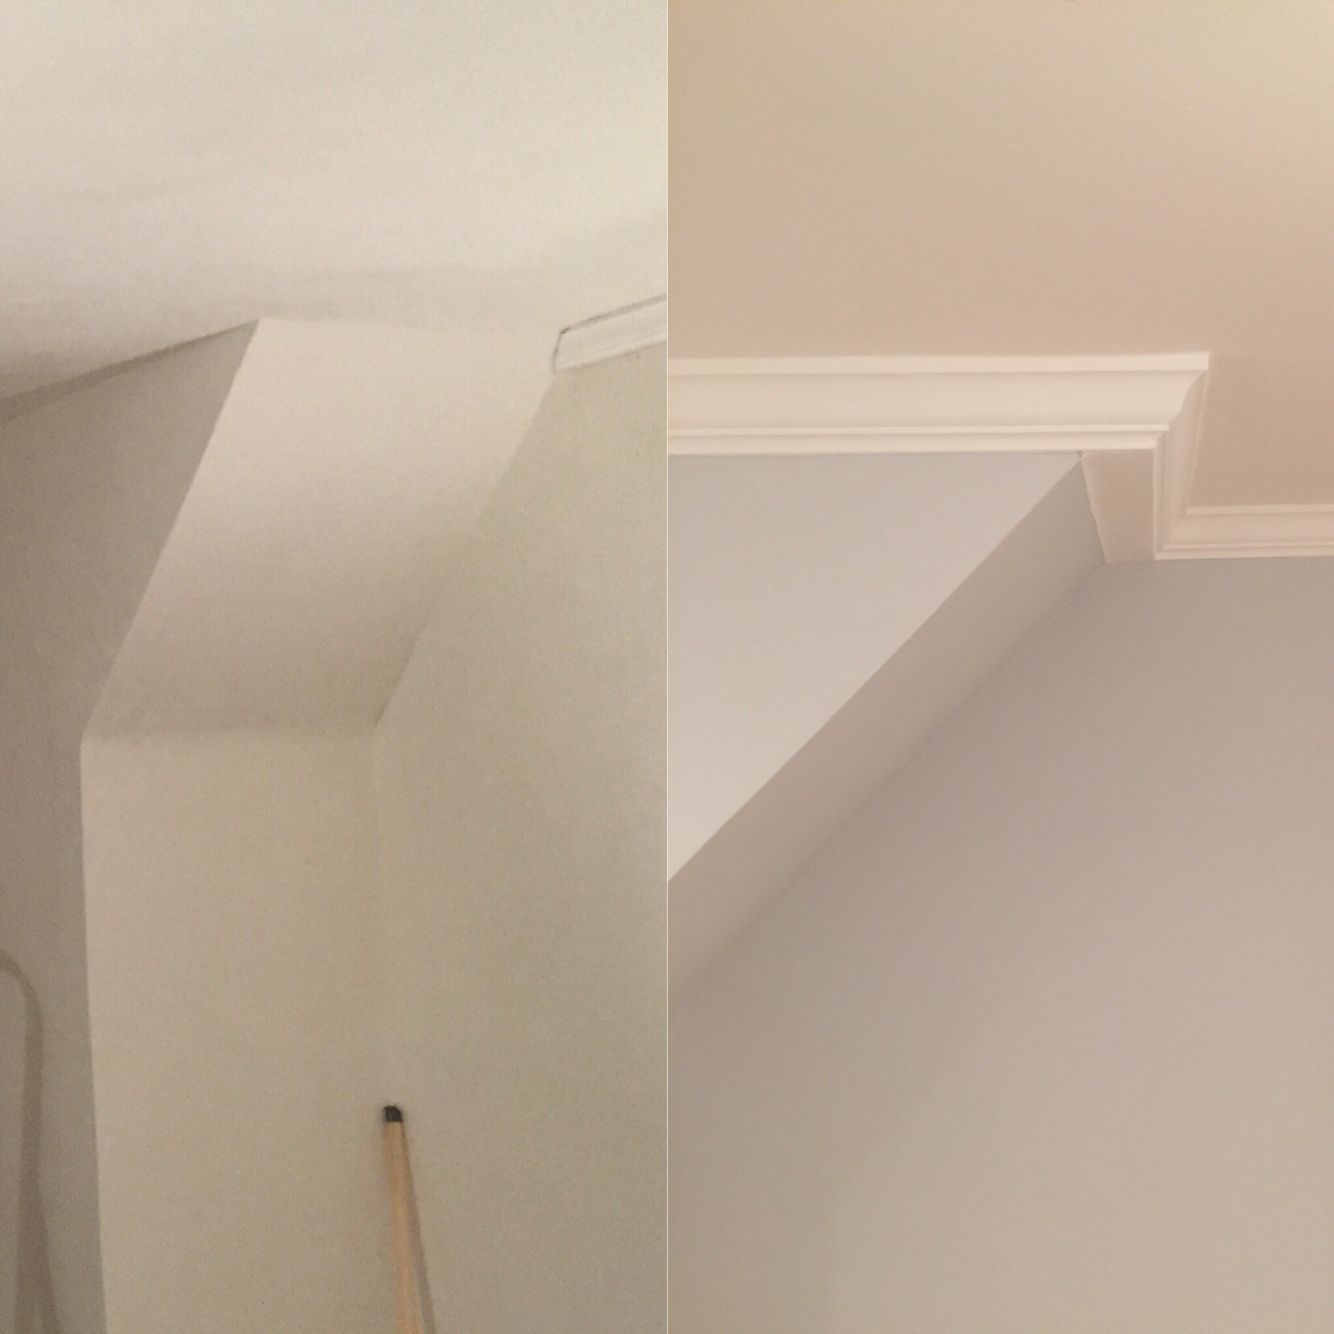 How to install crown molding on slope of vaulted ceiling. Need to ...